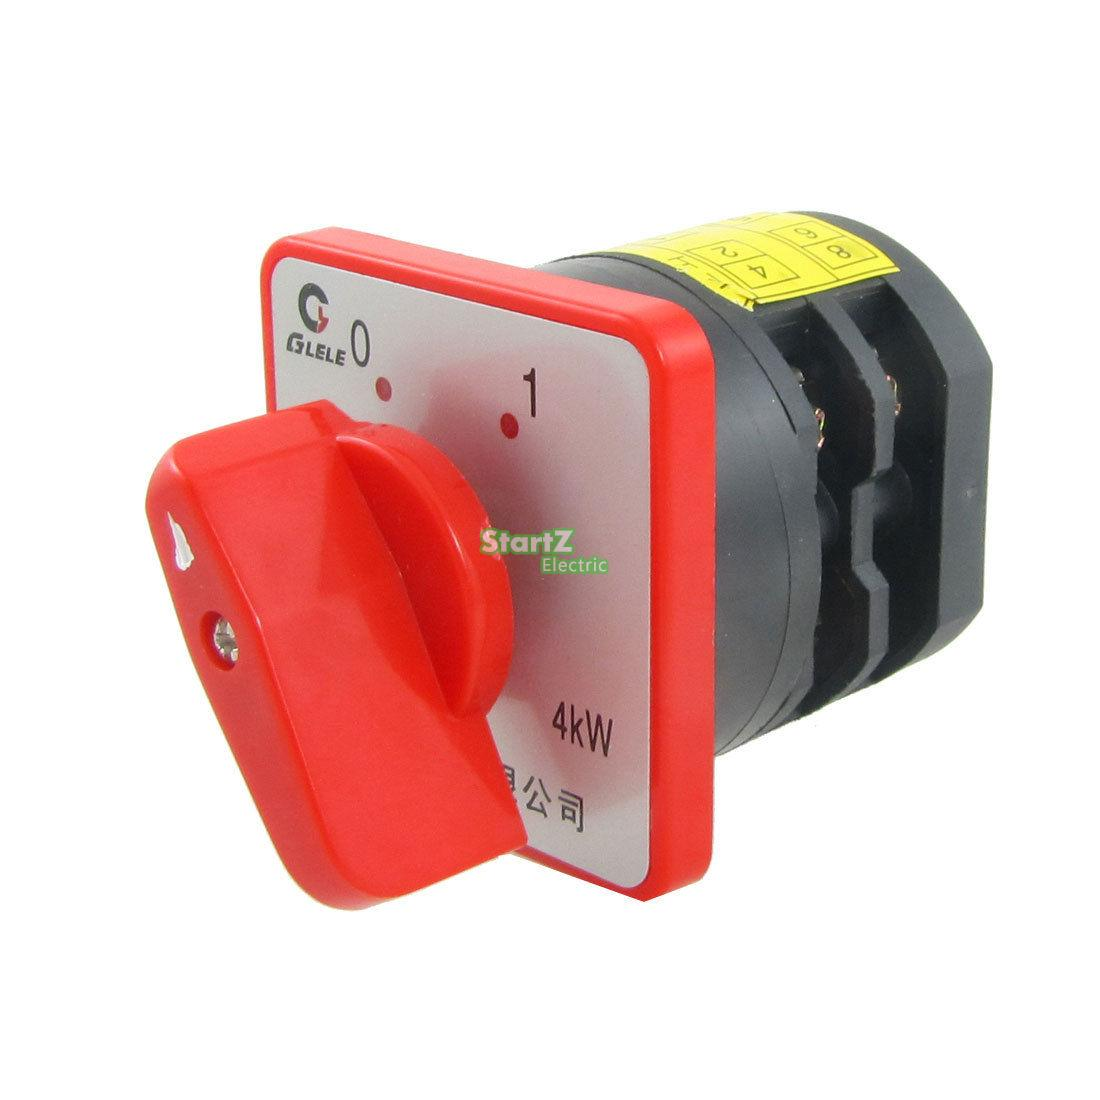 AC 380V 20A 4KW ON/OFF 2 Position Rotary Cam Universal Changeover Switch load circuit breaker switch ac ui 660v ith 100a on off 3 poles 3 phases 3no 2 position universal rotary cam changeover switch